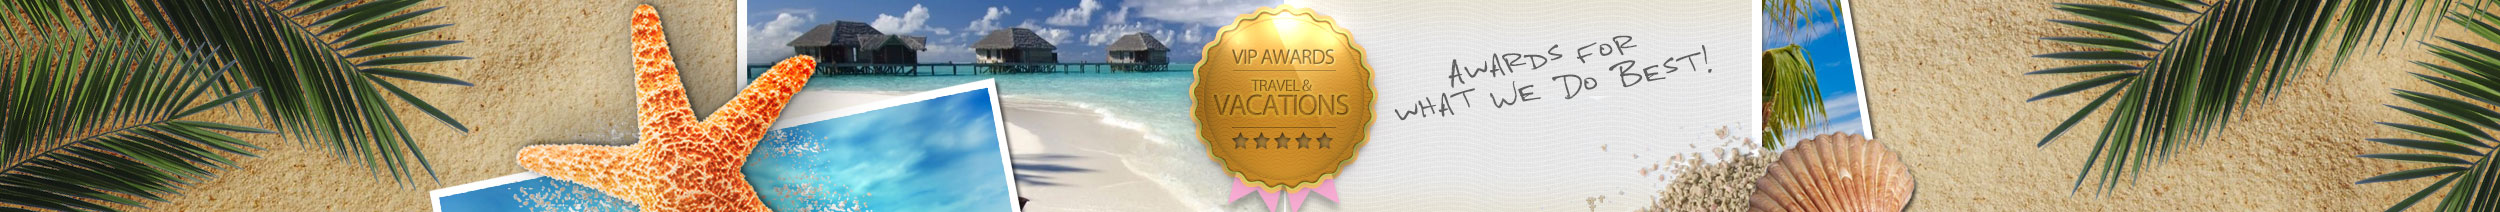 VIP VACATIONS ANNOUNCED AS A GOLD WINNER FOR THE 2017 TRAVEL WEEKLY MAGELLAN AWARDS